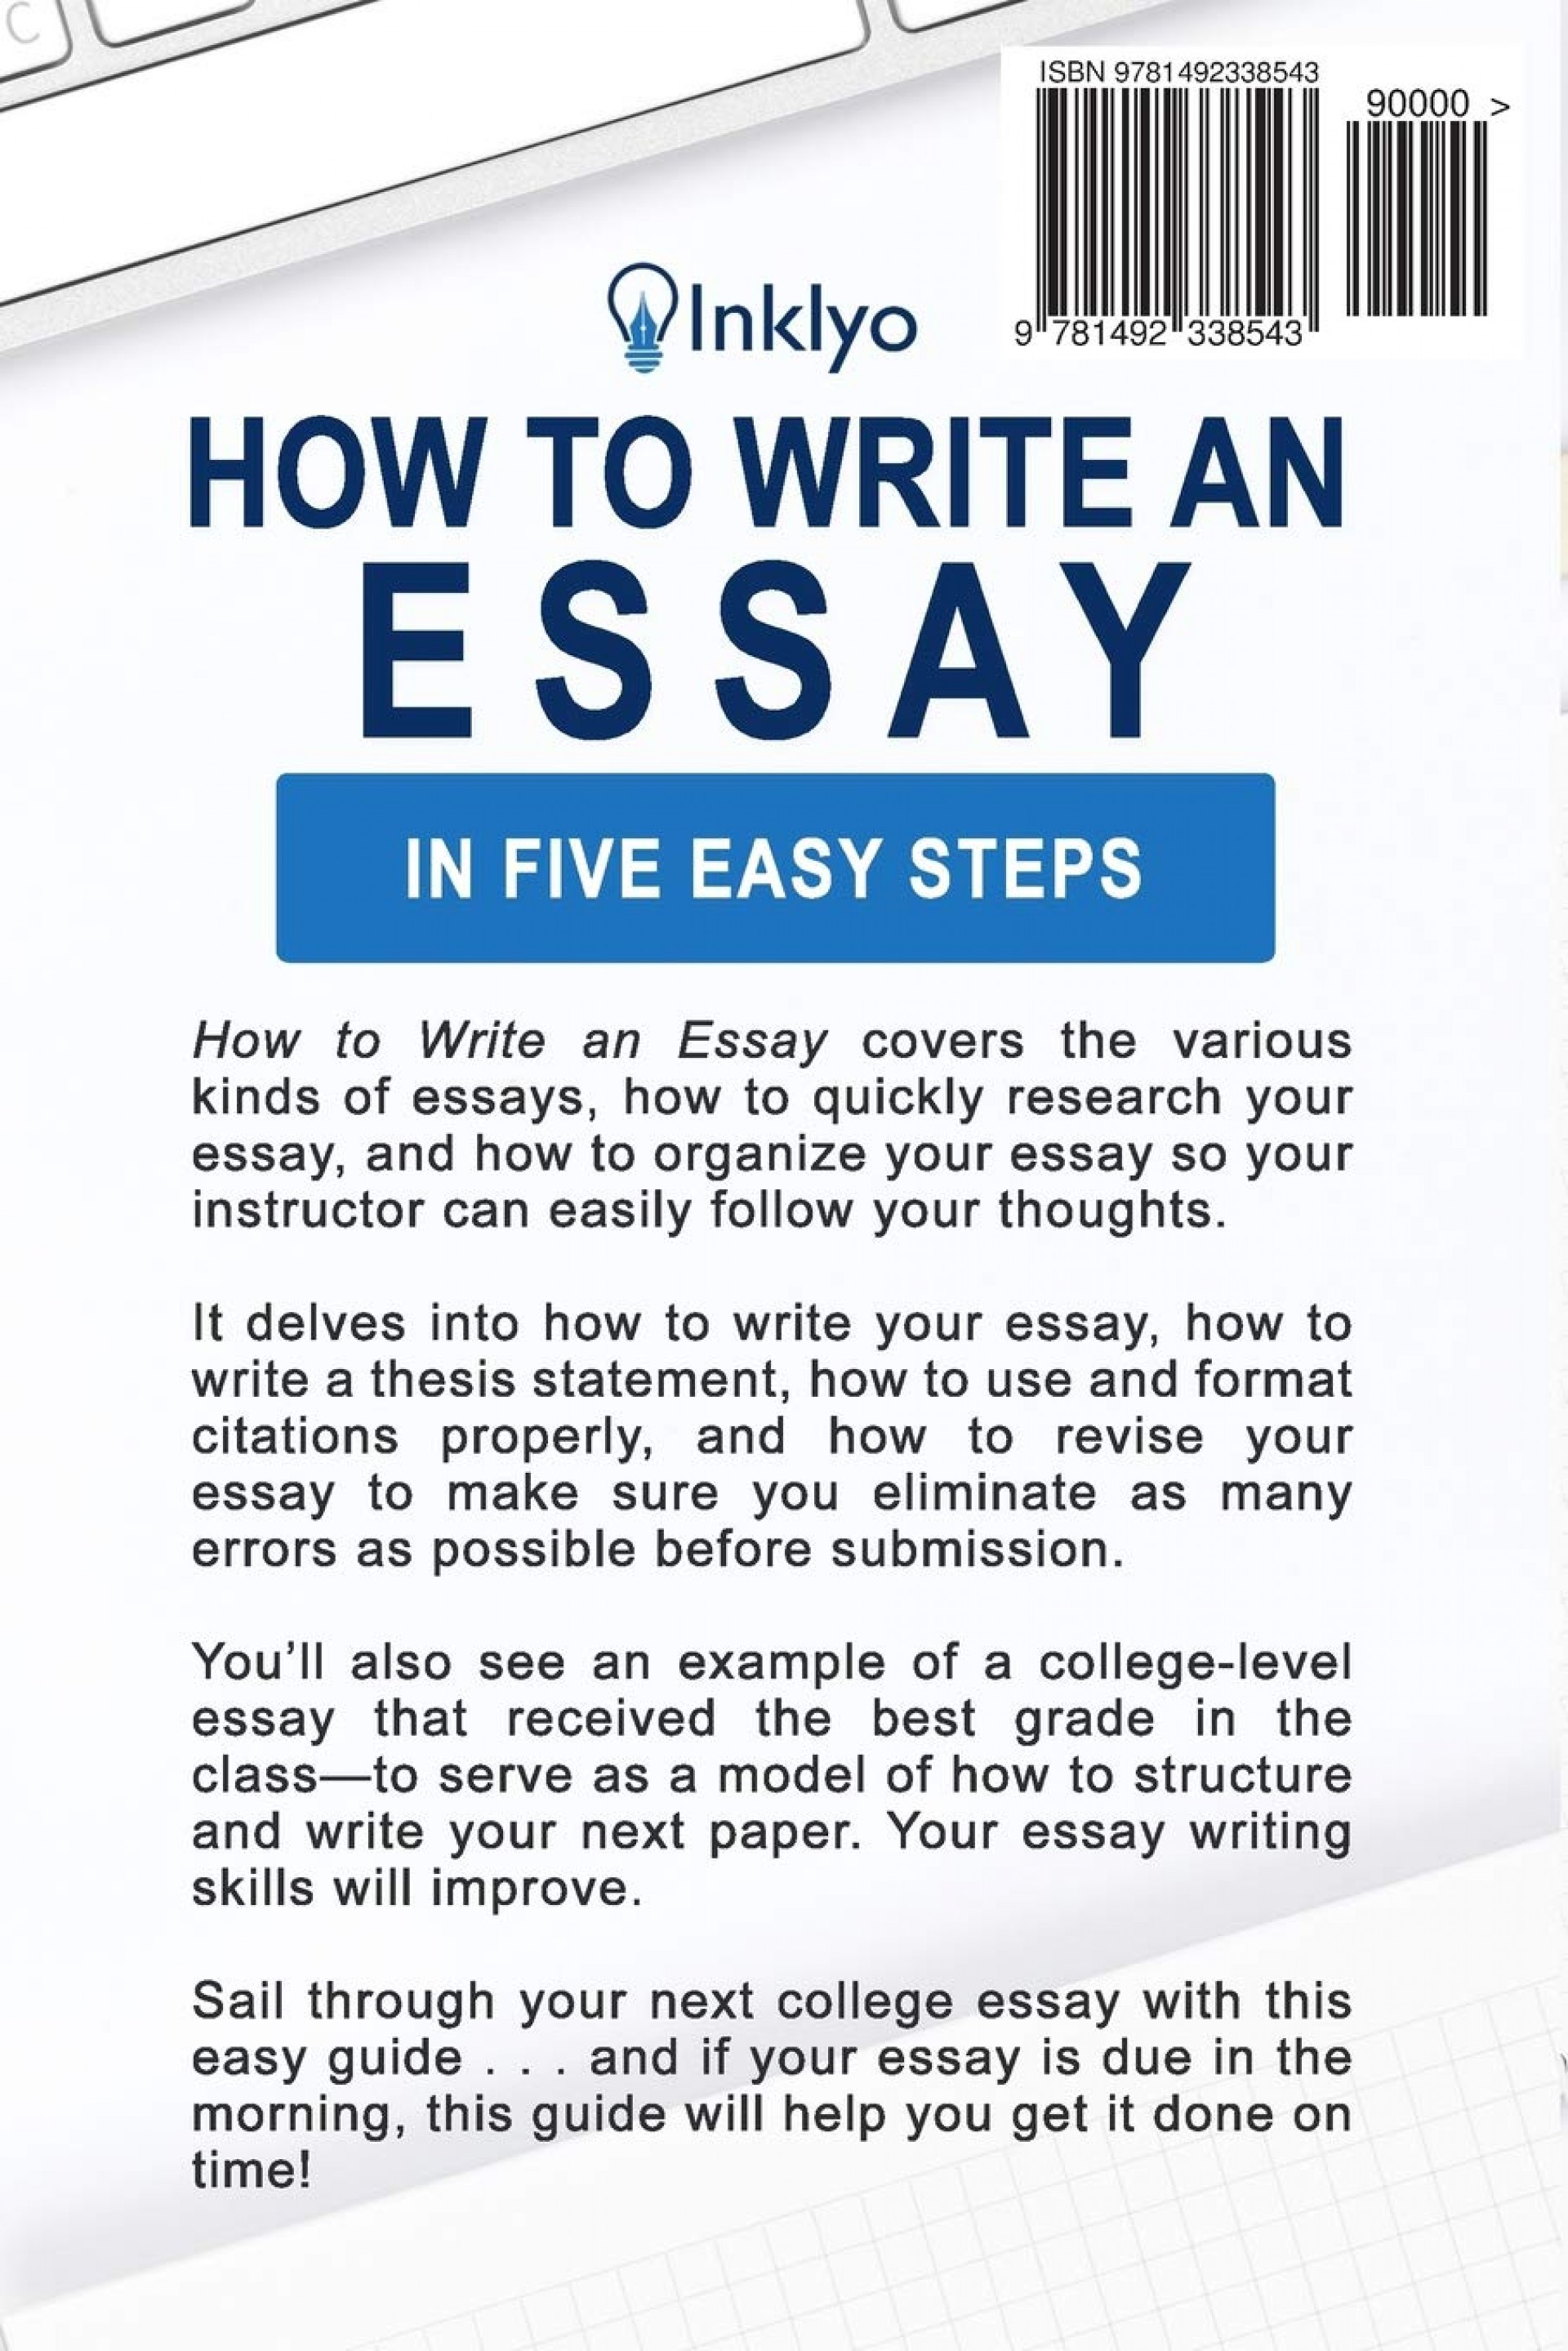 007 How To Make An Essay 71v7ckw5pll Unusual Outline Paper Introduction Title Page 1920